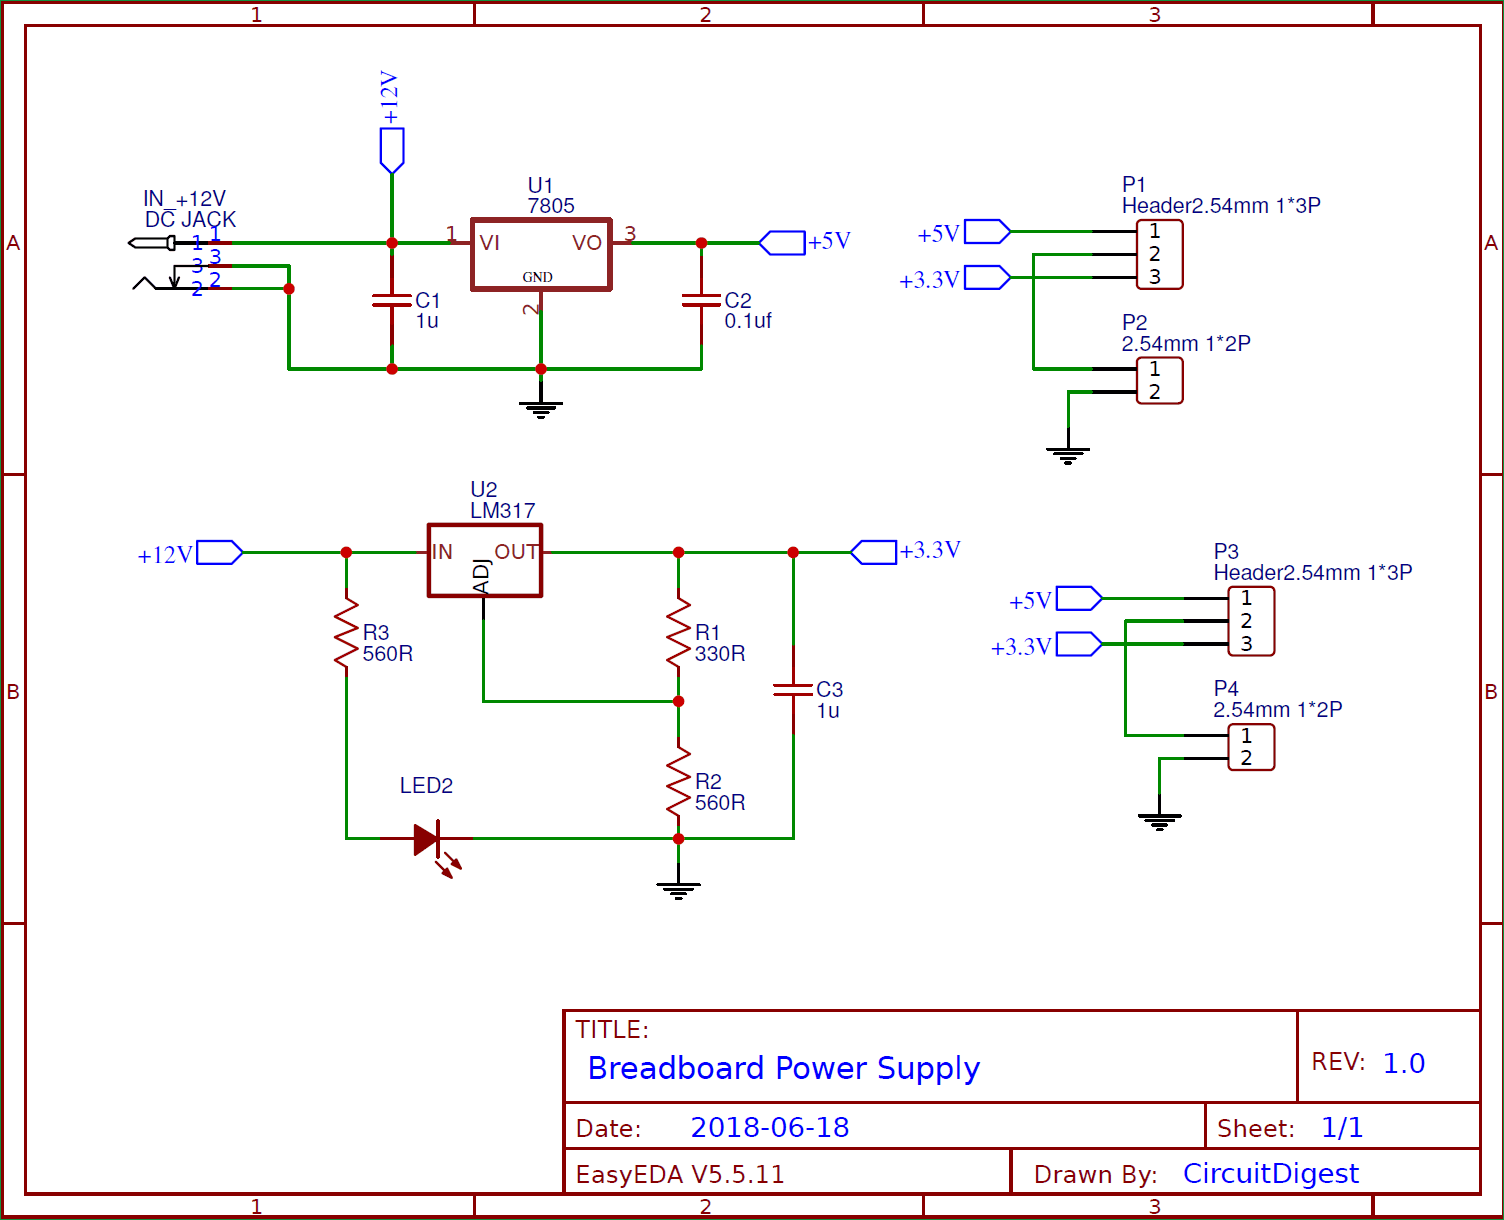 circuit diagram for diy breadboard power supply circuit on pcb [ 1504 x 1220 Pixel ]